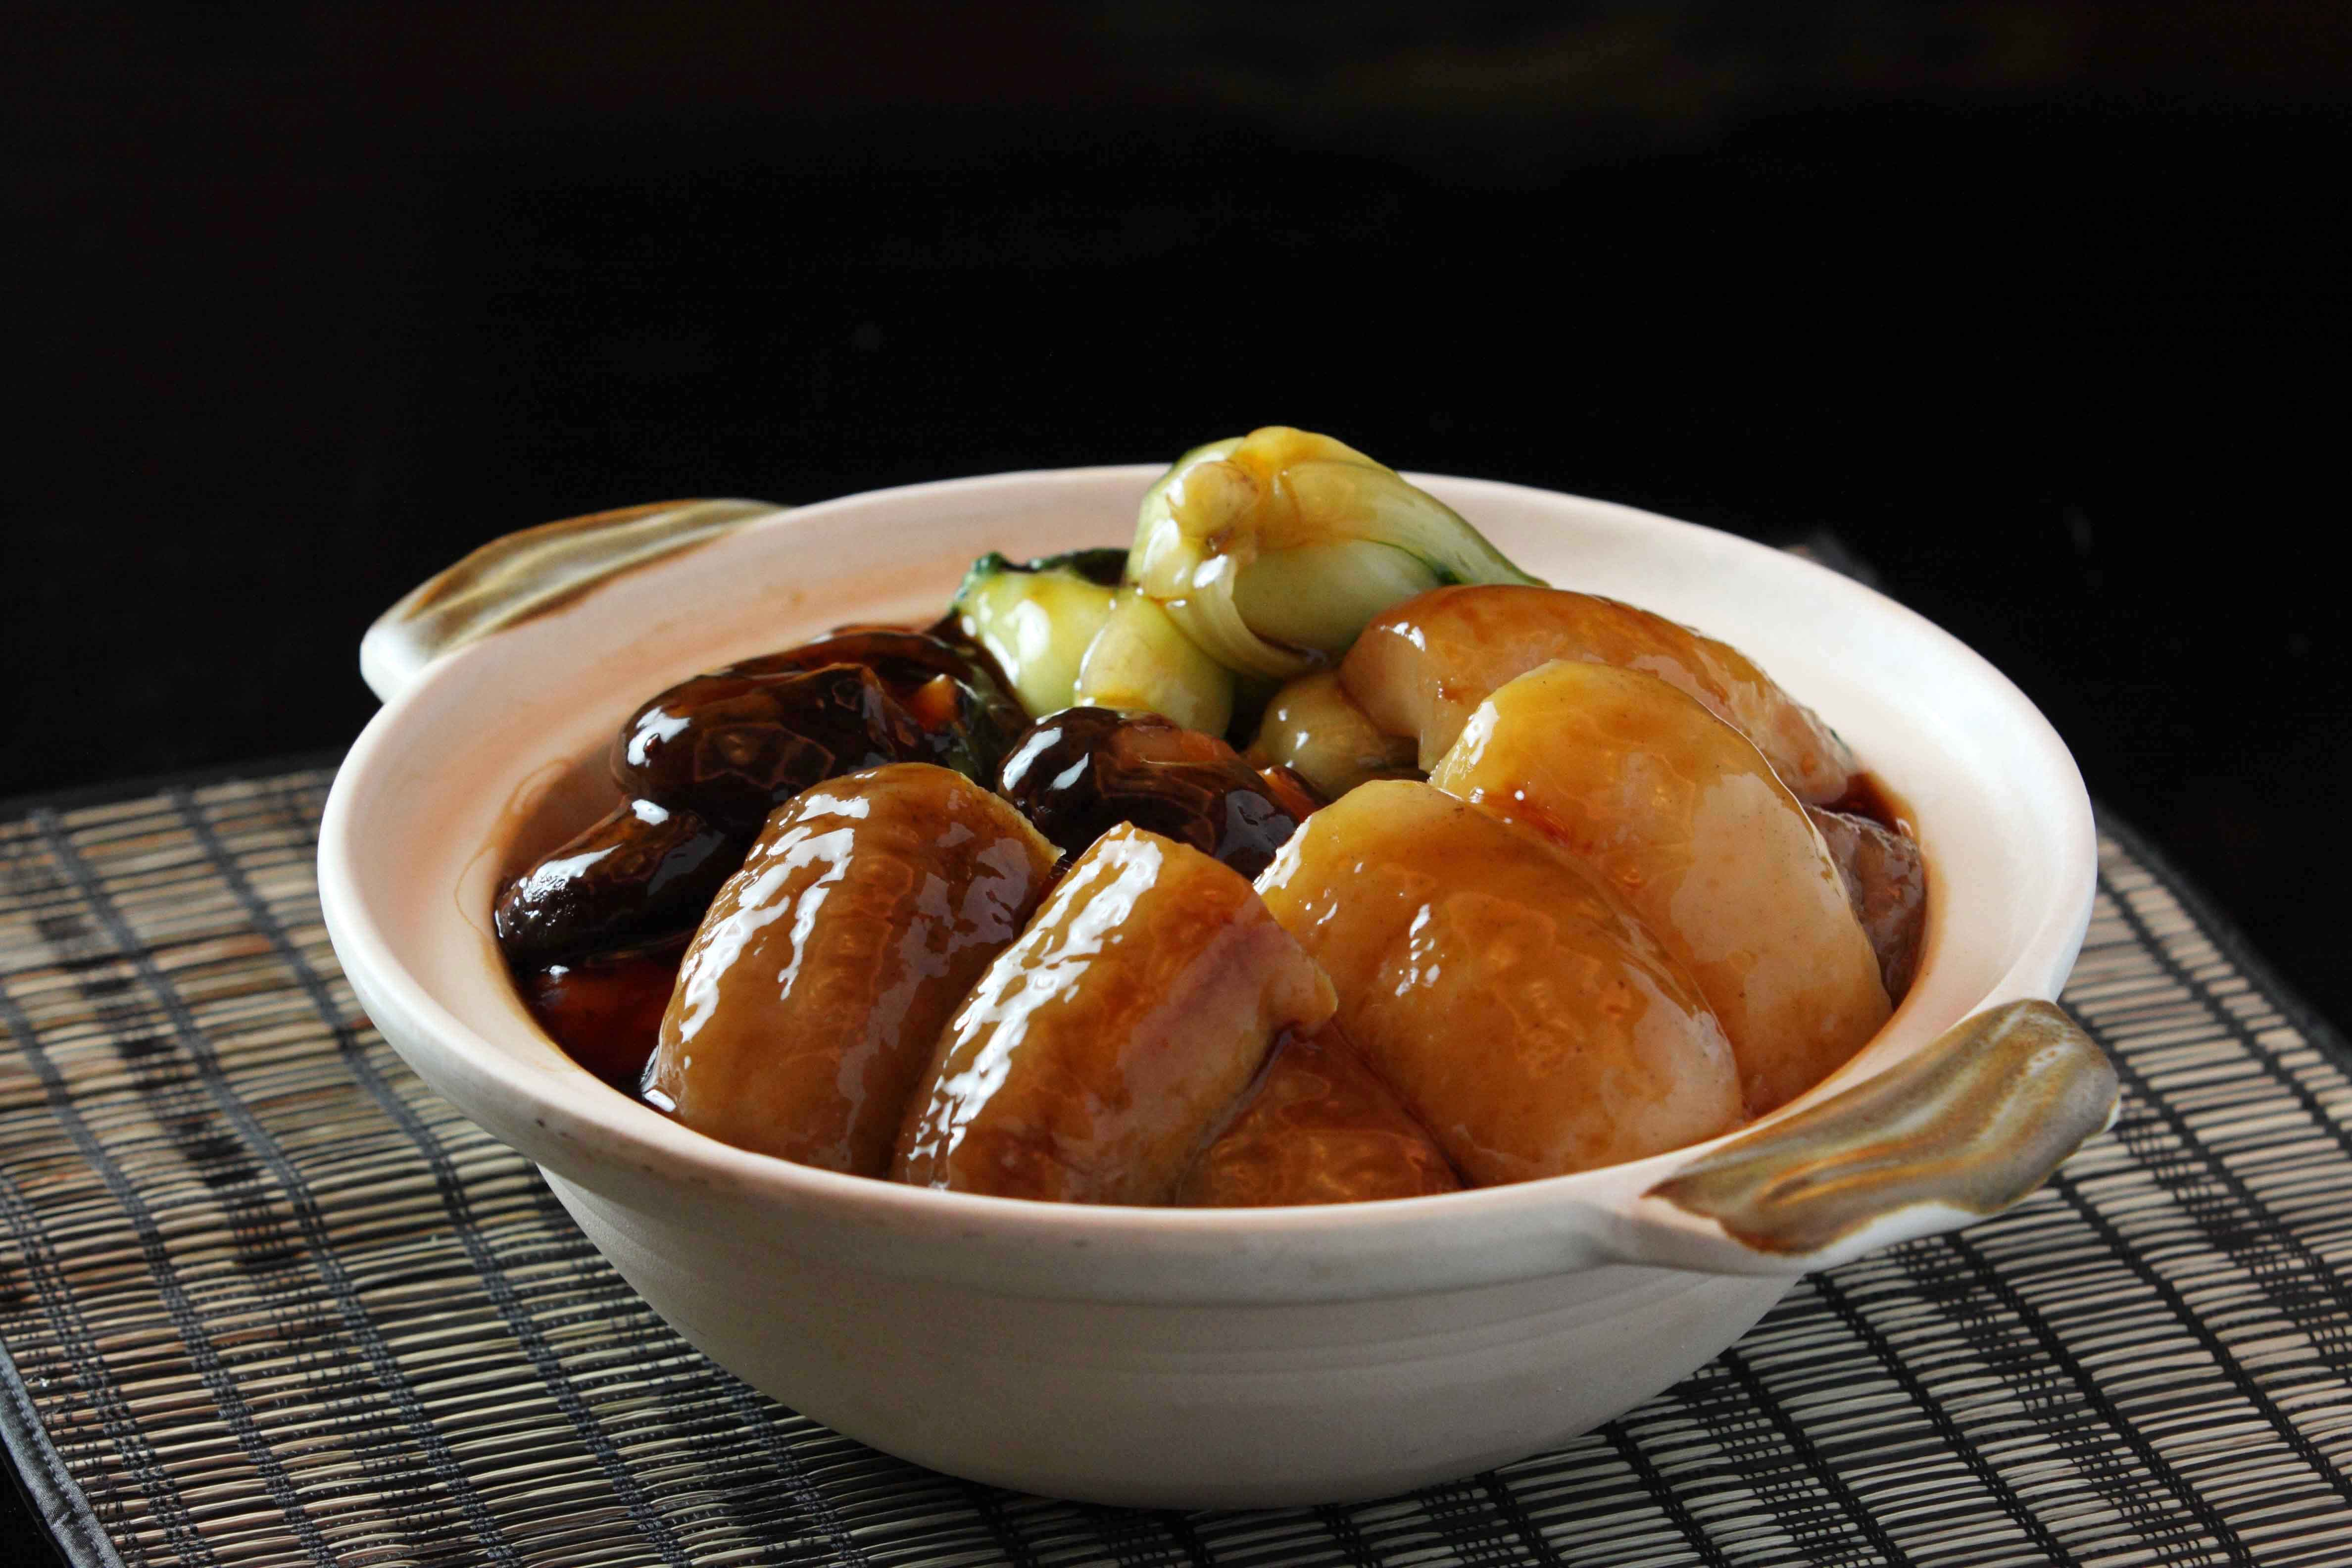 Braised Sea Cucumber, Chinese New Year Dishes, Lunar New Year Dishes